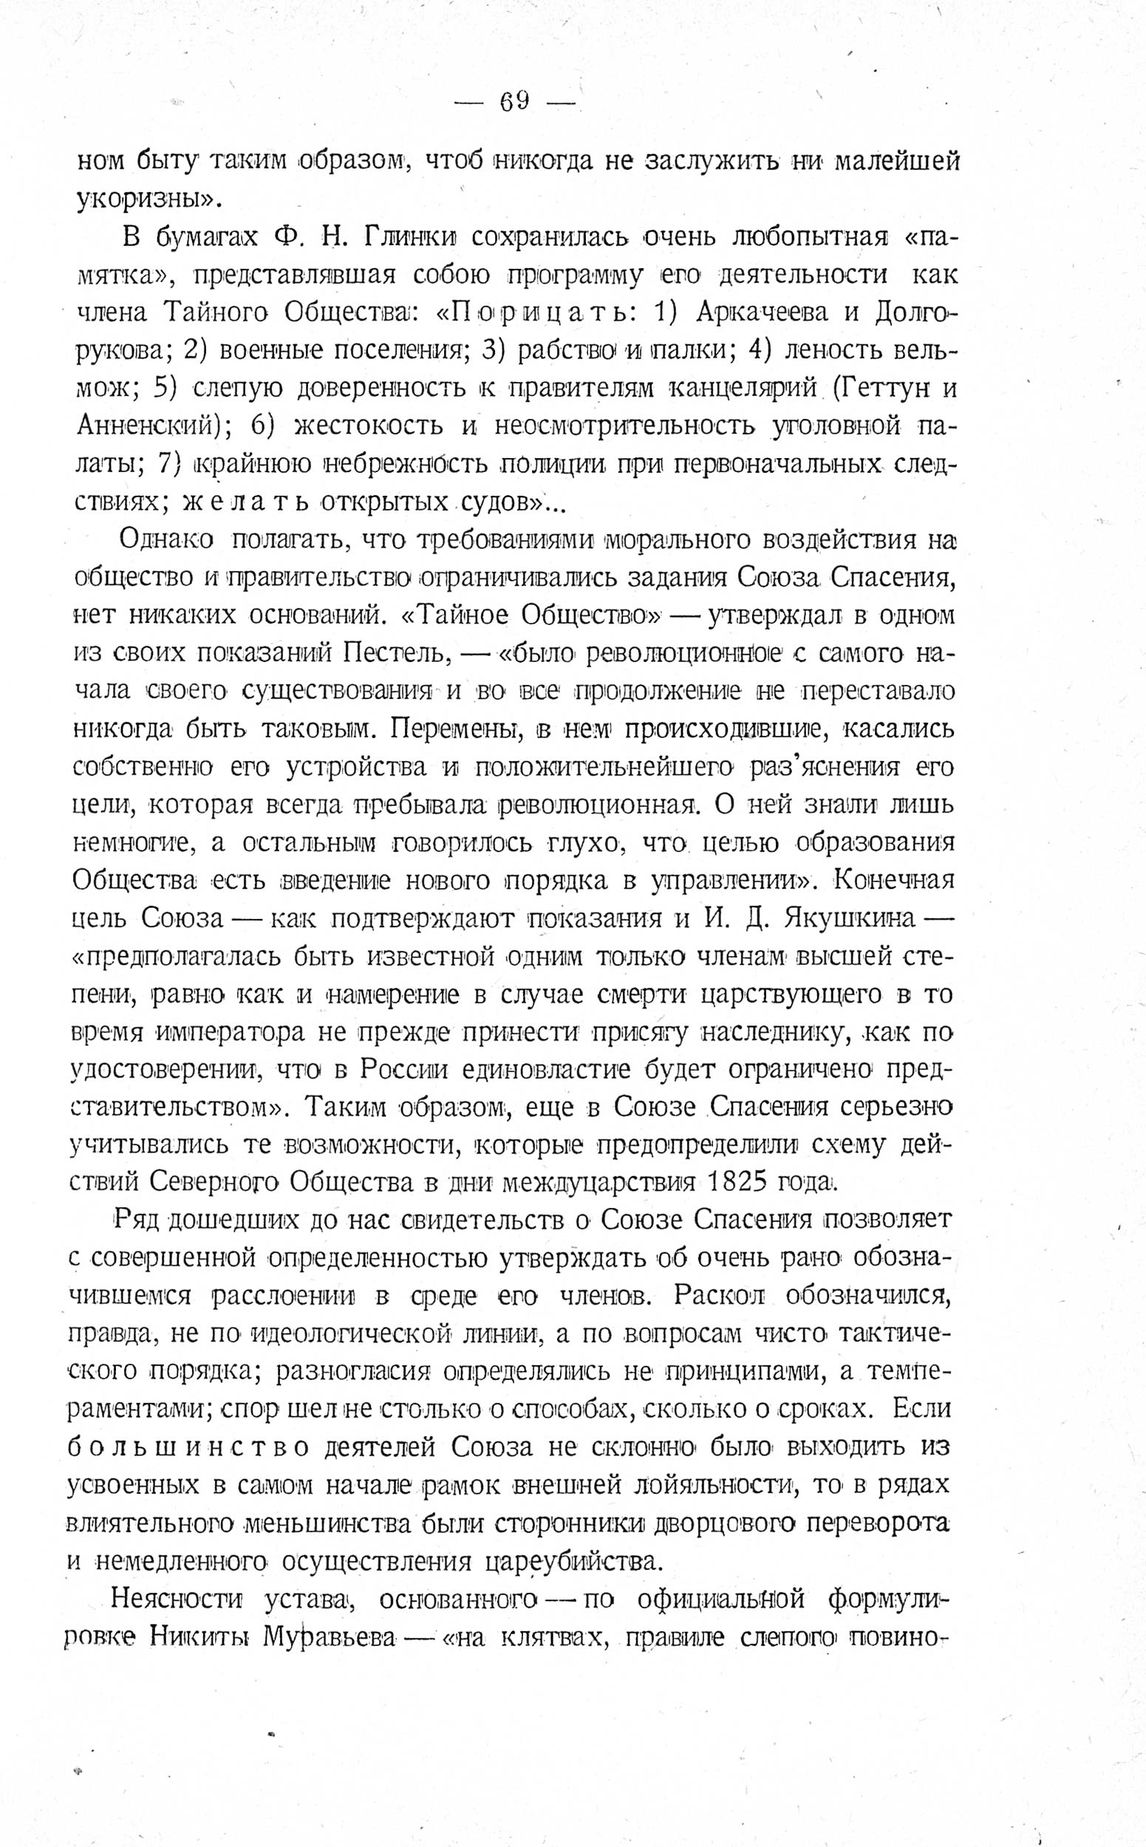 http://elib.shpl.ru/pages/625652/zooms/7